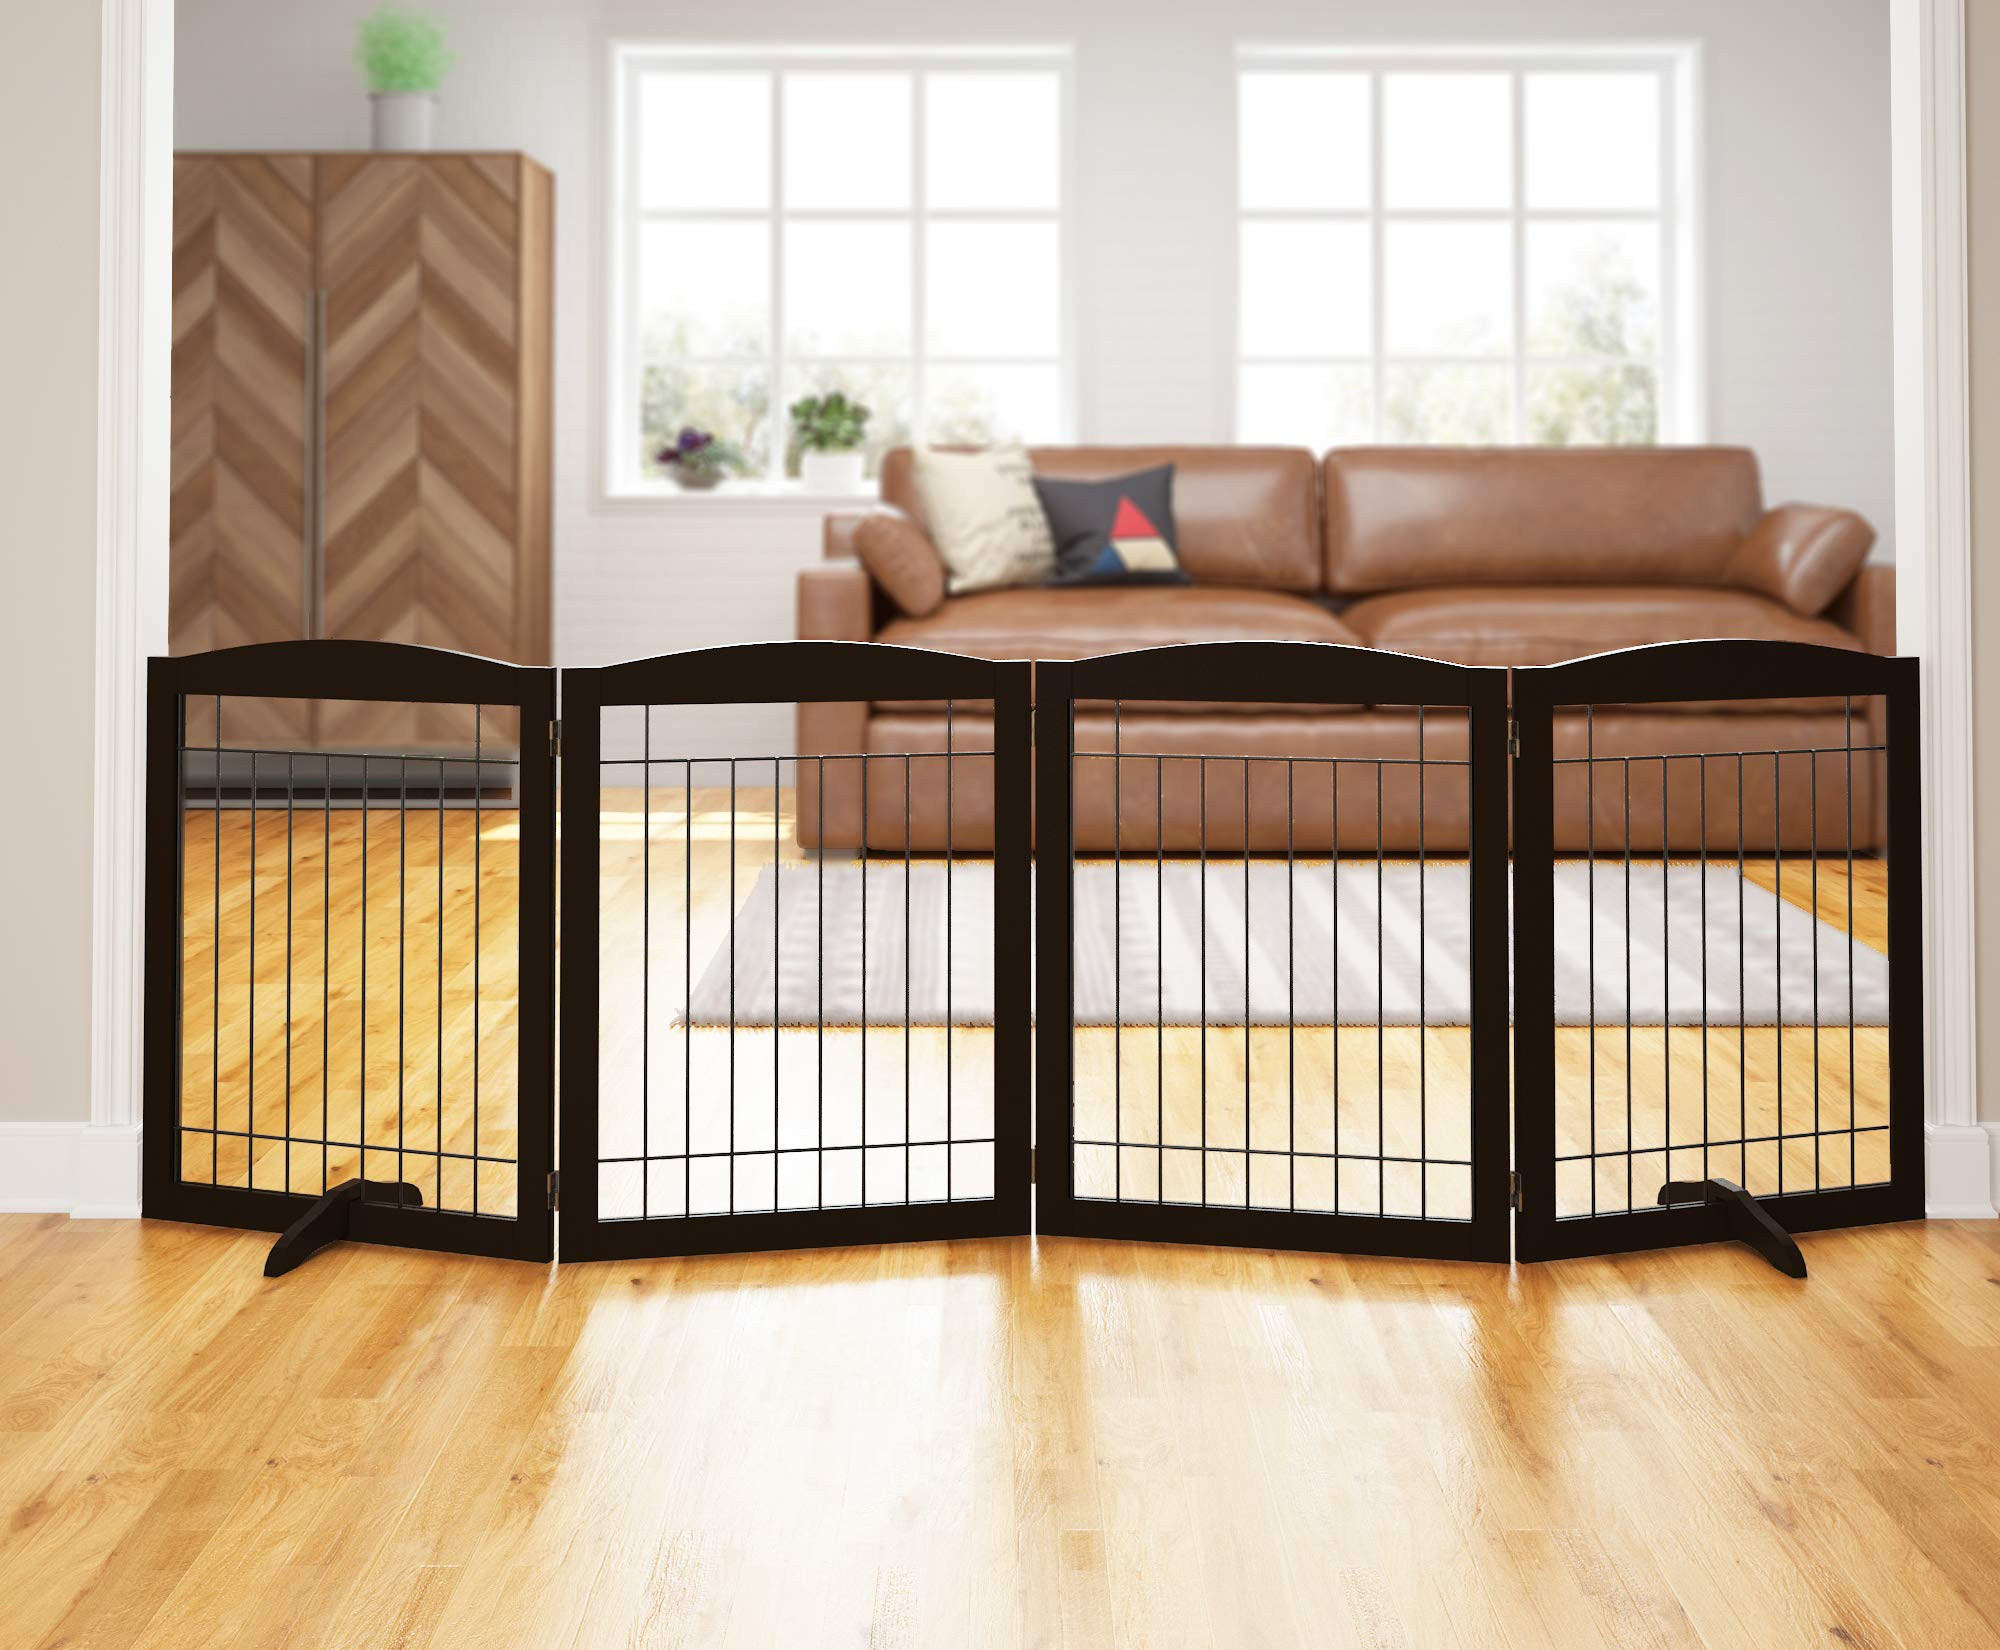 PAWLAND 96-inch Extra Wide Dog gate for The House, Doorway, Stairs, Freestanding Foldable Wire Pet Gate, Pet Puppy Safety Fence   Set of Support Feet Included (Espresso, 30'' Height-4 Panels)